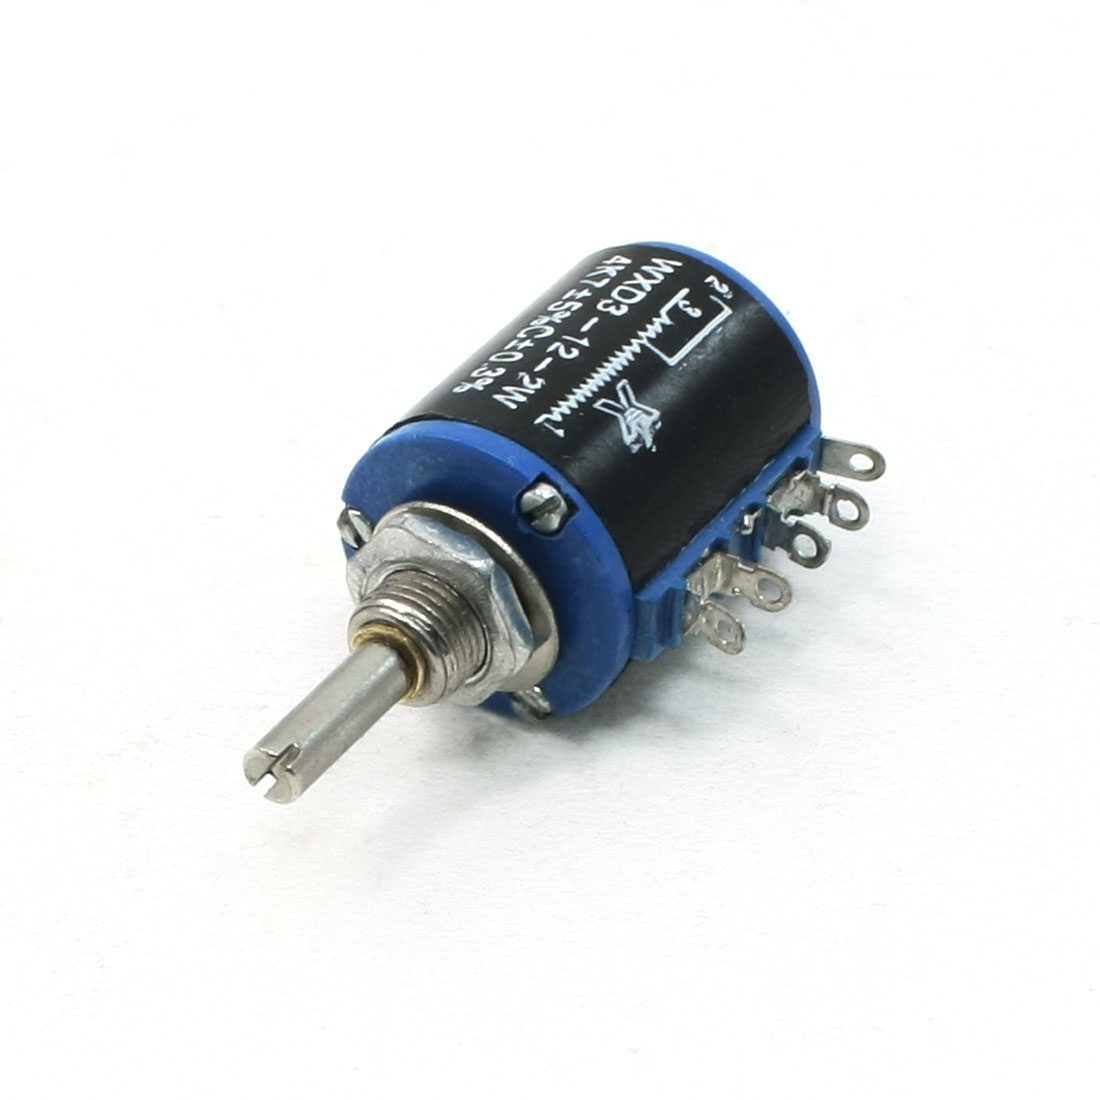 Multiturn Type 5 Pin Terminals Wire Wound Potentiometer 2W 4.7K Ohm